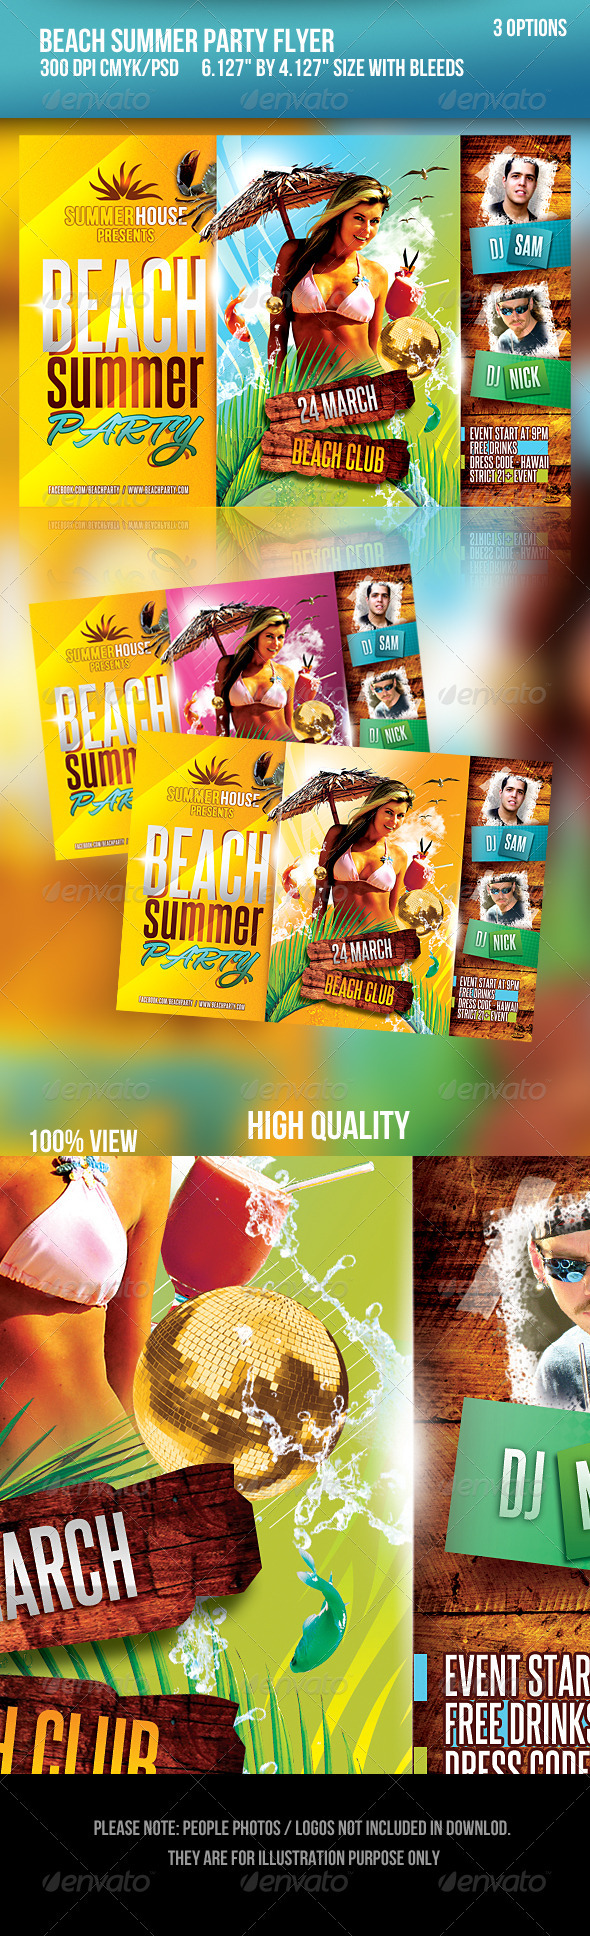 GraphicRiver Beach Summer Party Flyer 1875347